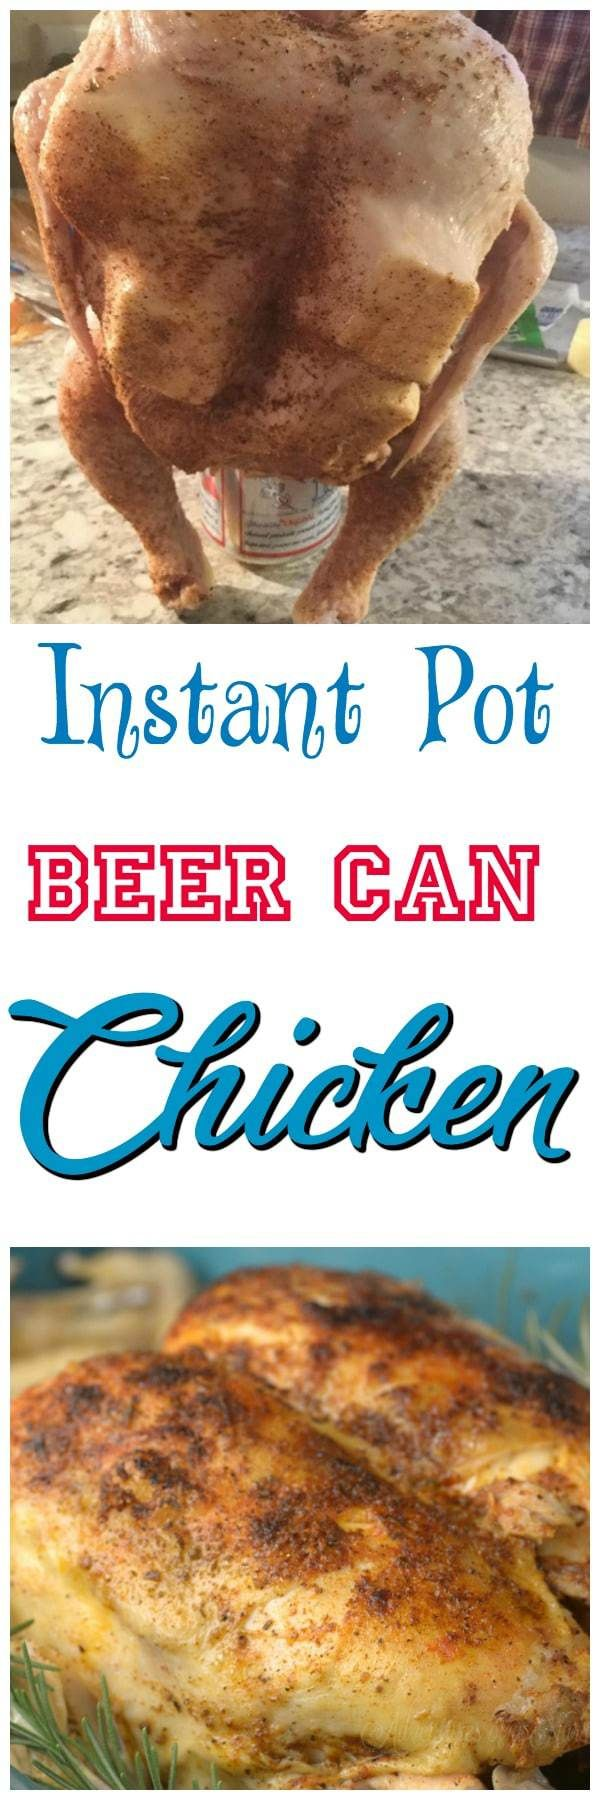 #Chicken #InstantPot #PressureCooker